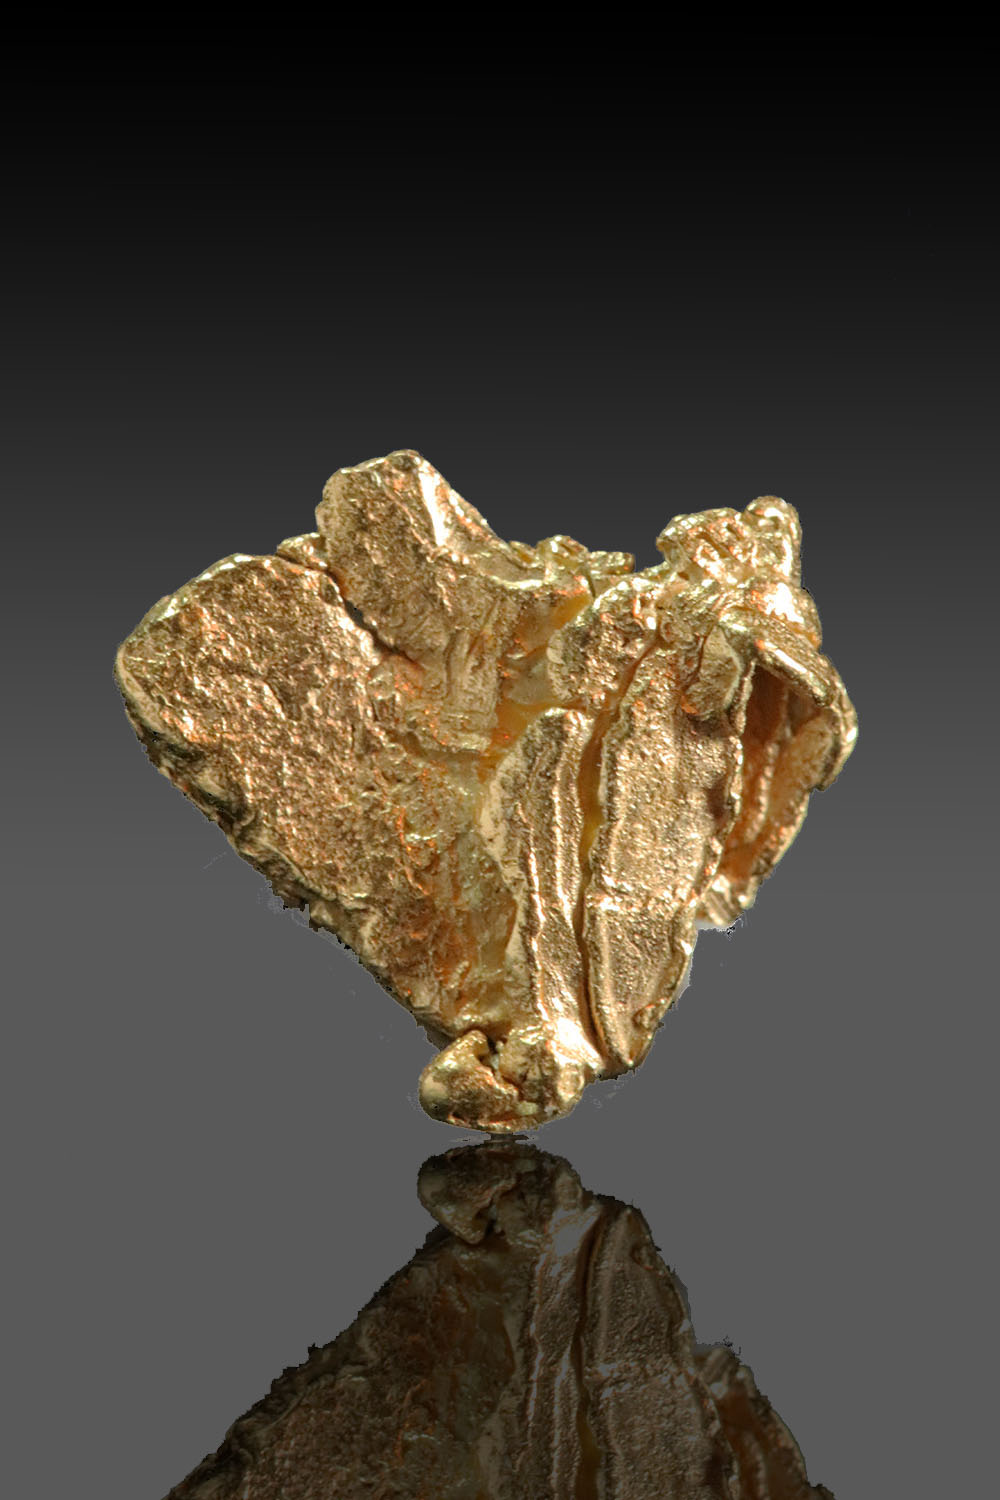 Folded Gold Specimen from the yukon Territory